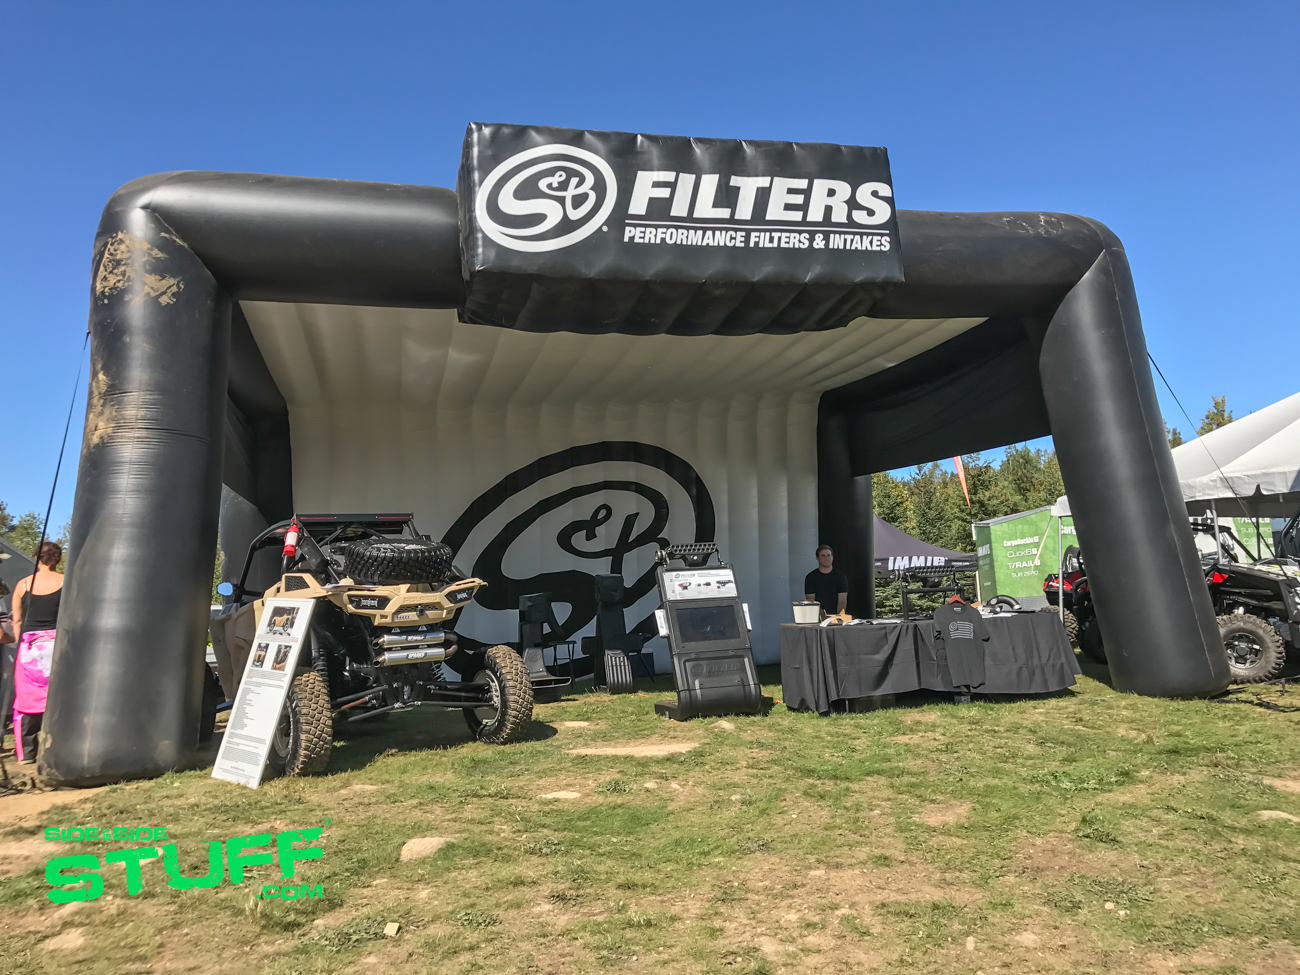 S&B Filters Camp RZR New England